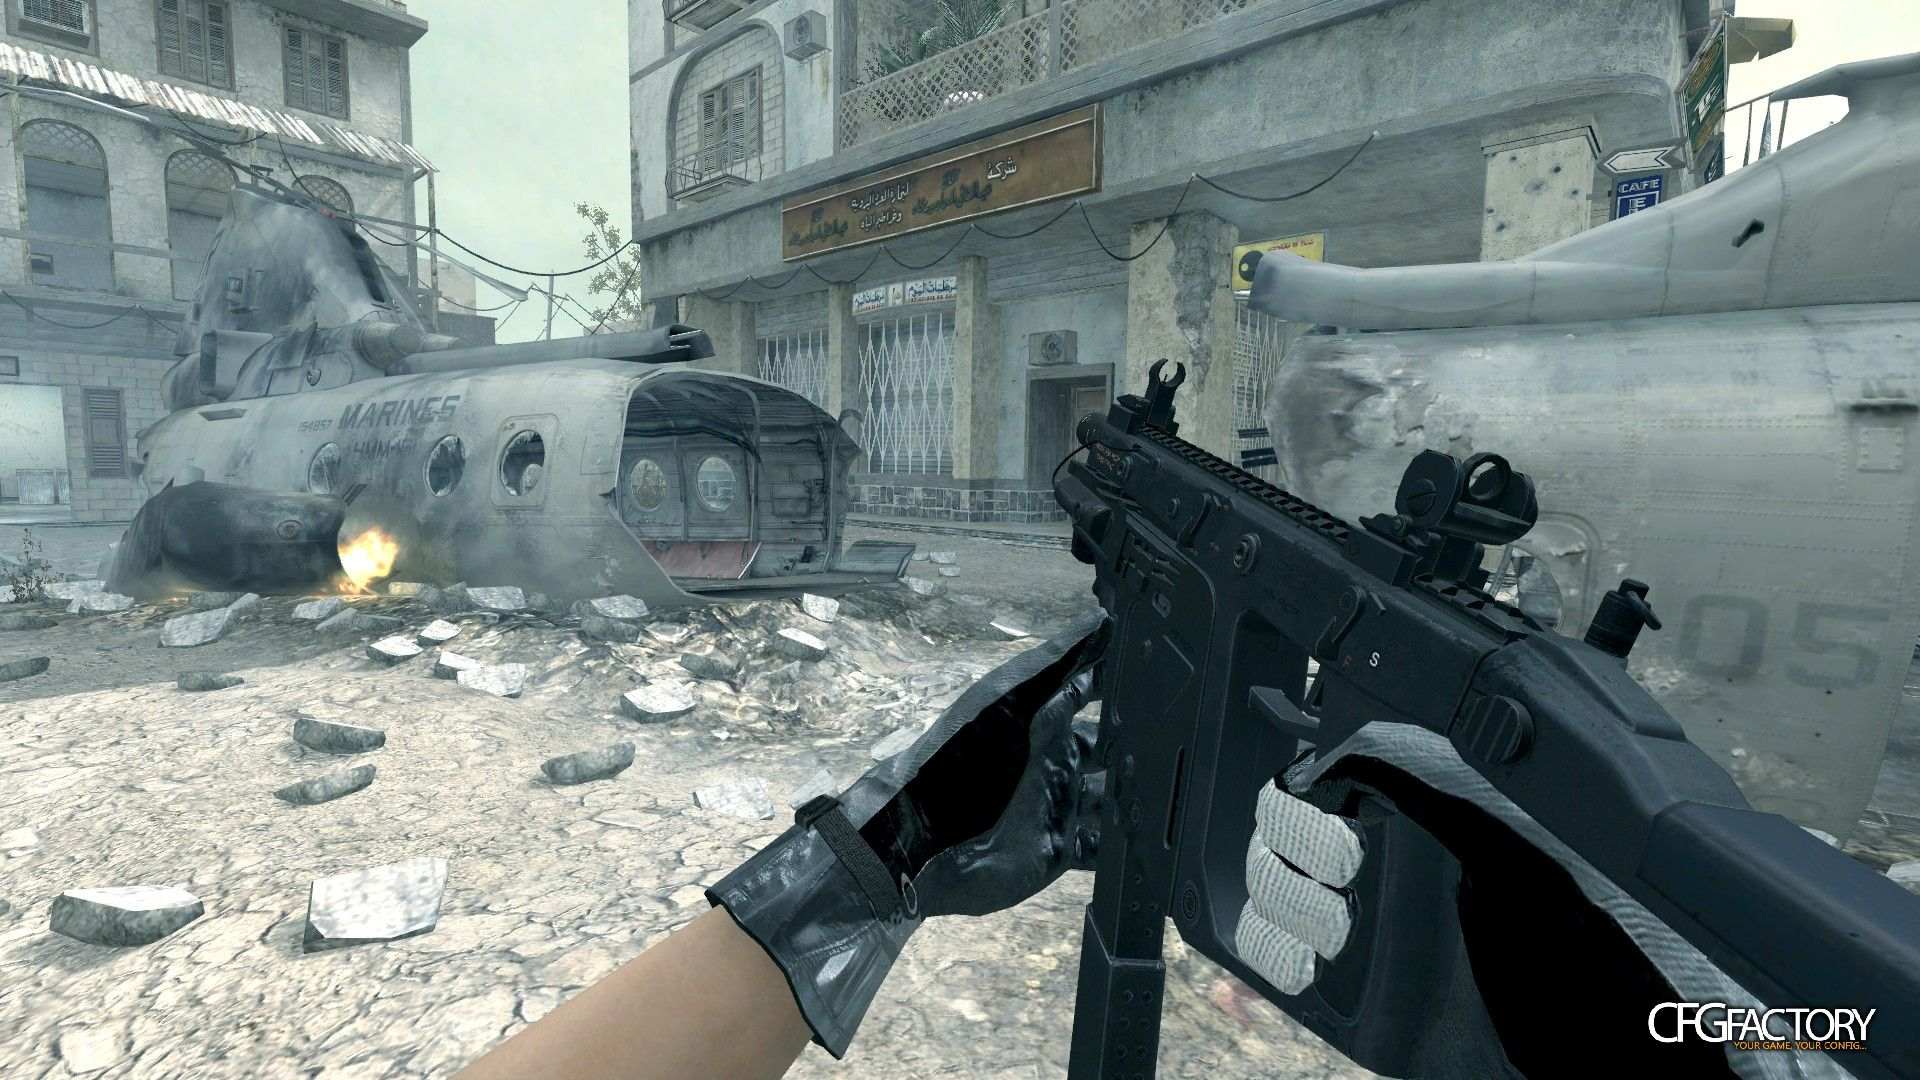 cod4, custom models, ghosts vector, convictiondr